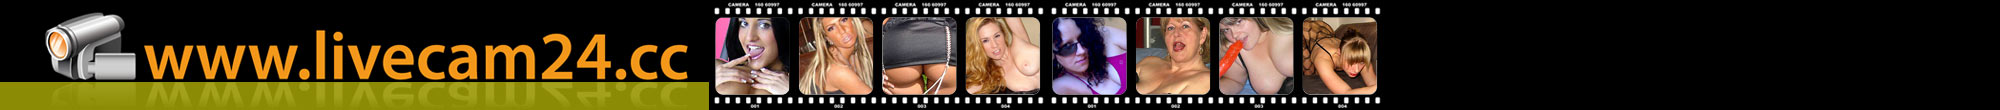 Lalaine, 23 Jahre, BH: 75 B - brüste 75dd -  - Video Web Cams Live Sex Chat von heissen Girls